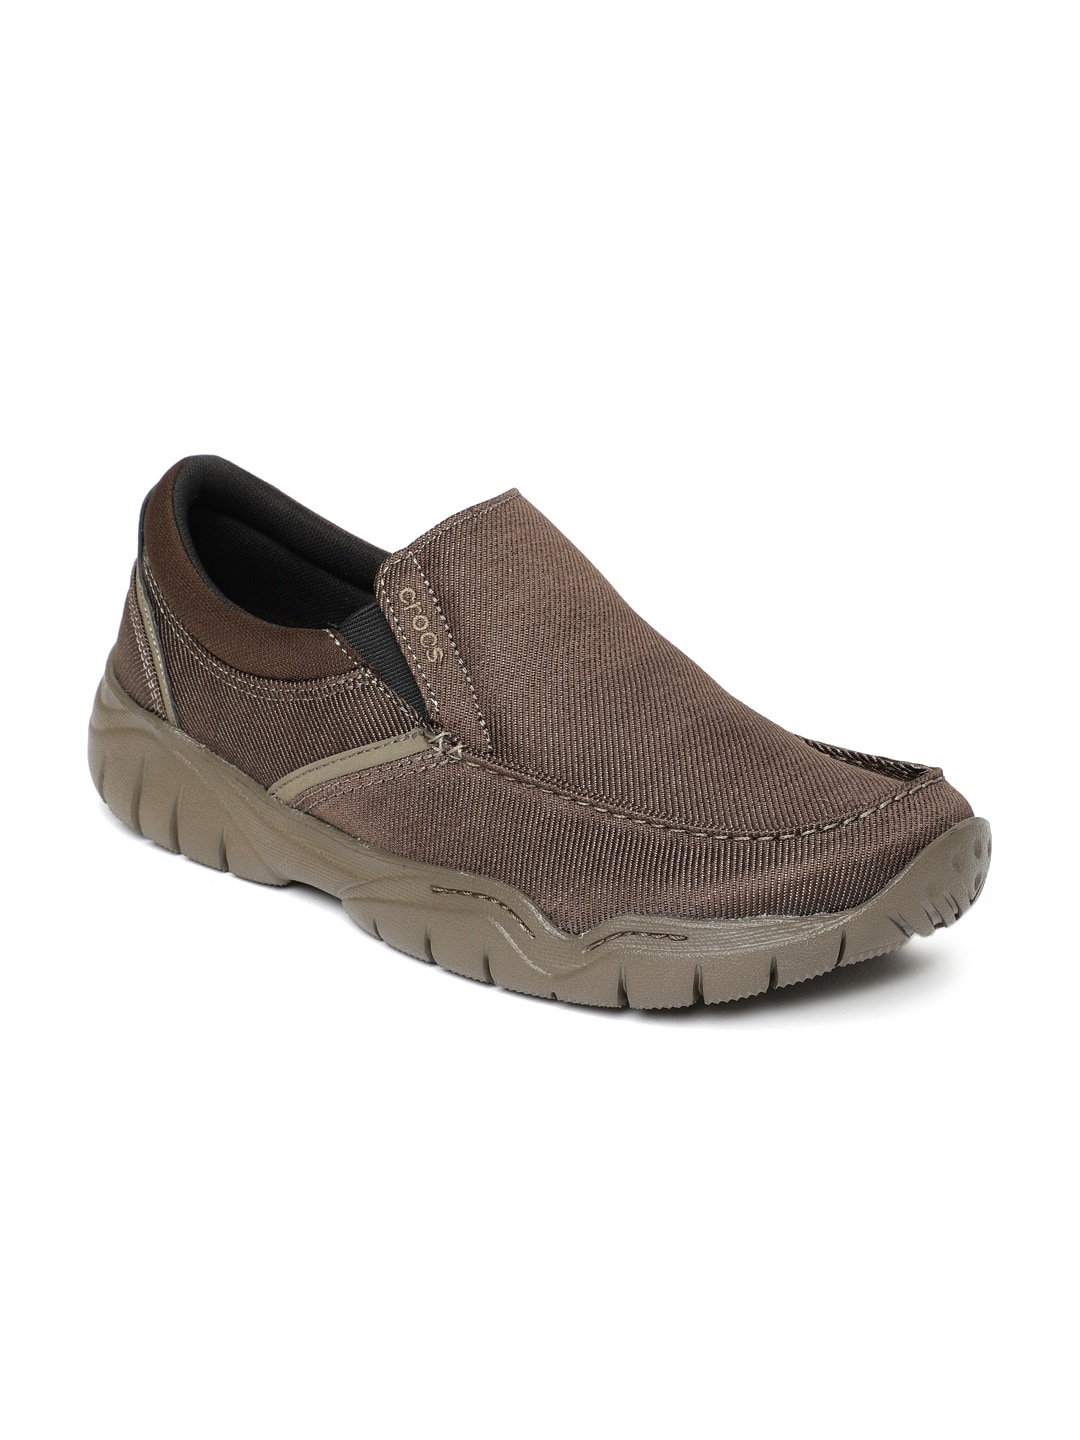 835ad7be53e65 Crocs Men Footwear - Buy Crocs Shoes and Sandals For Men Online in India